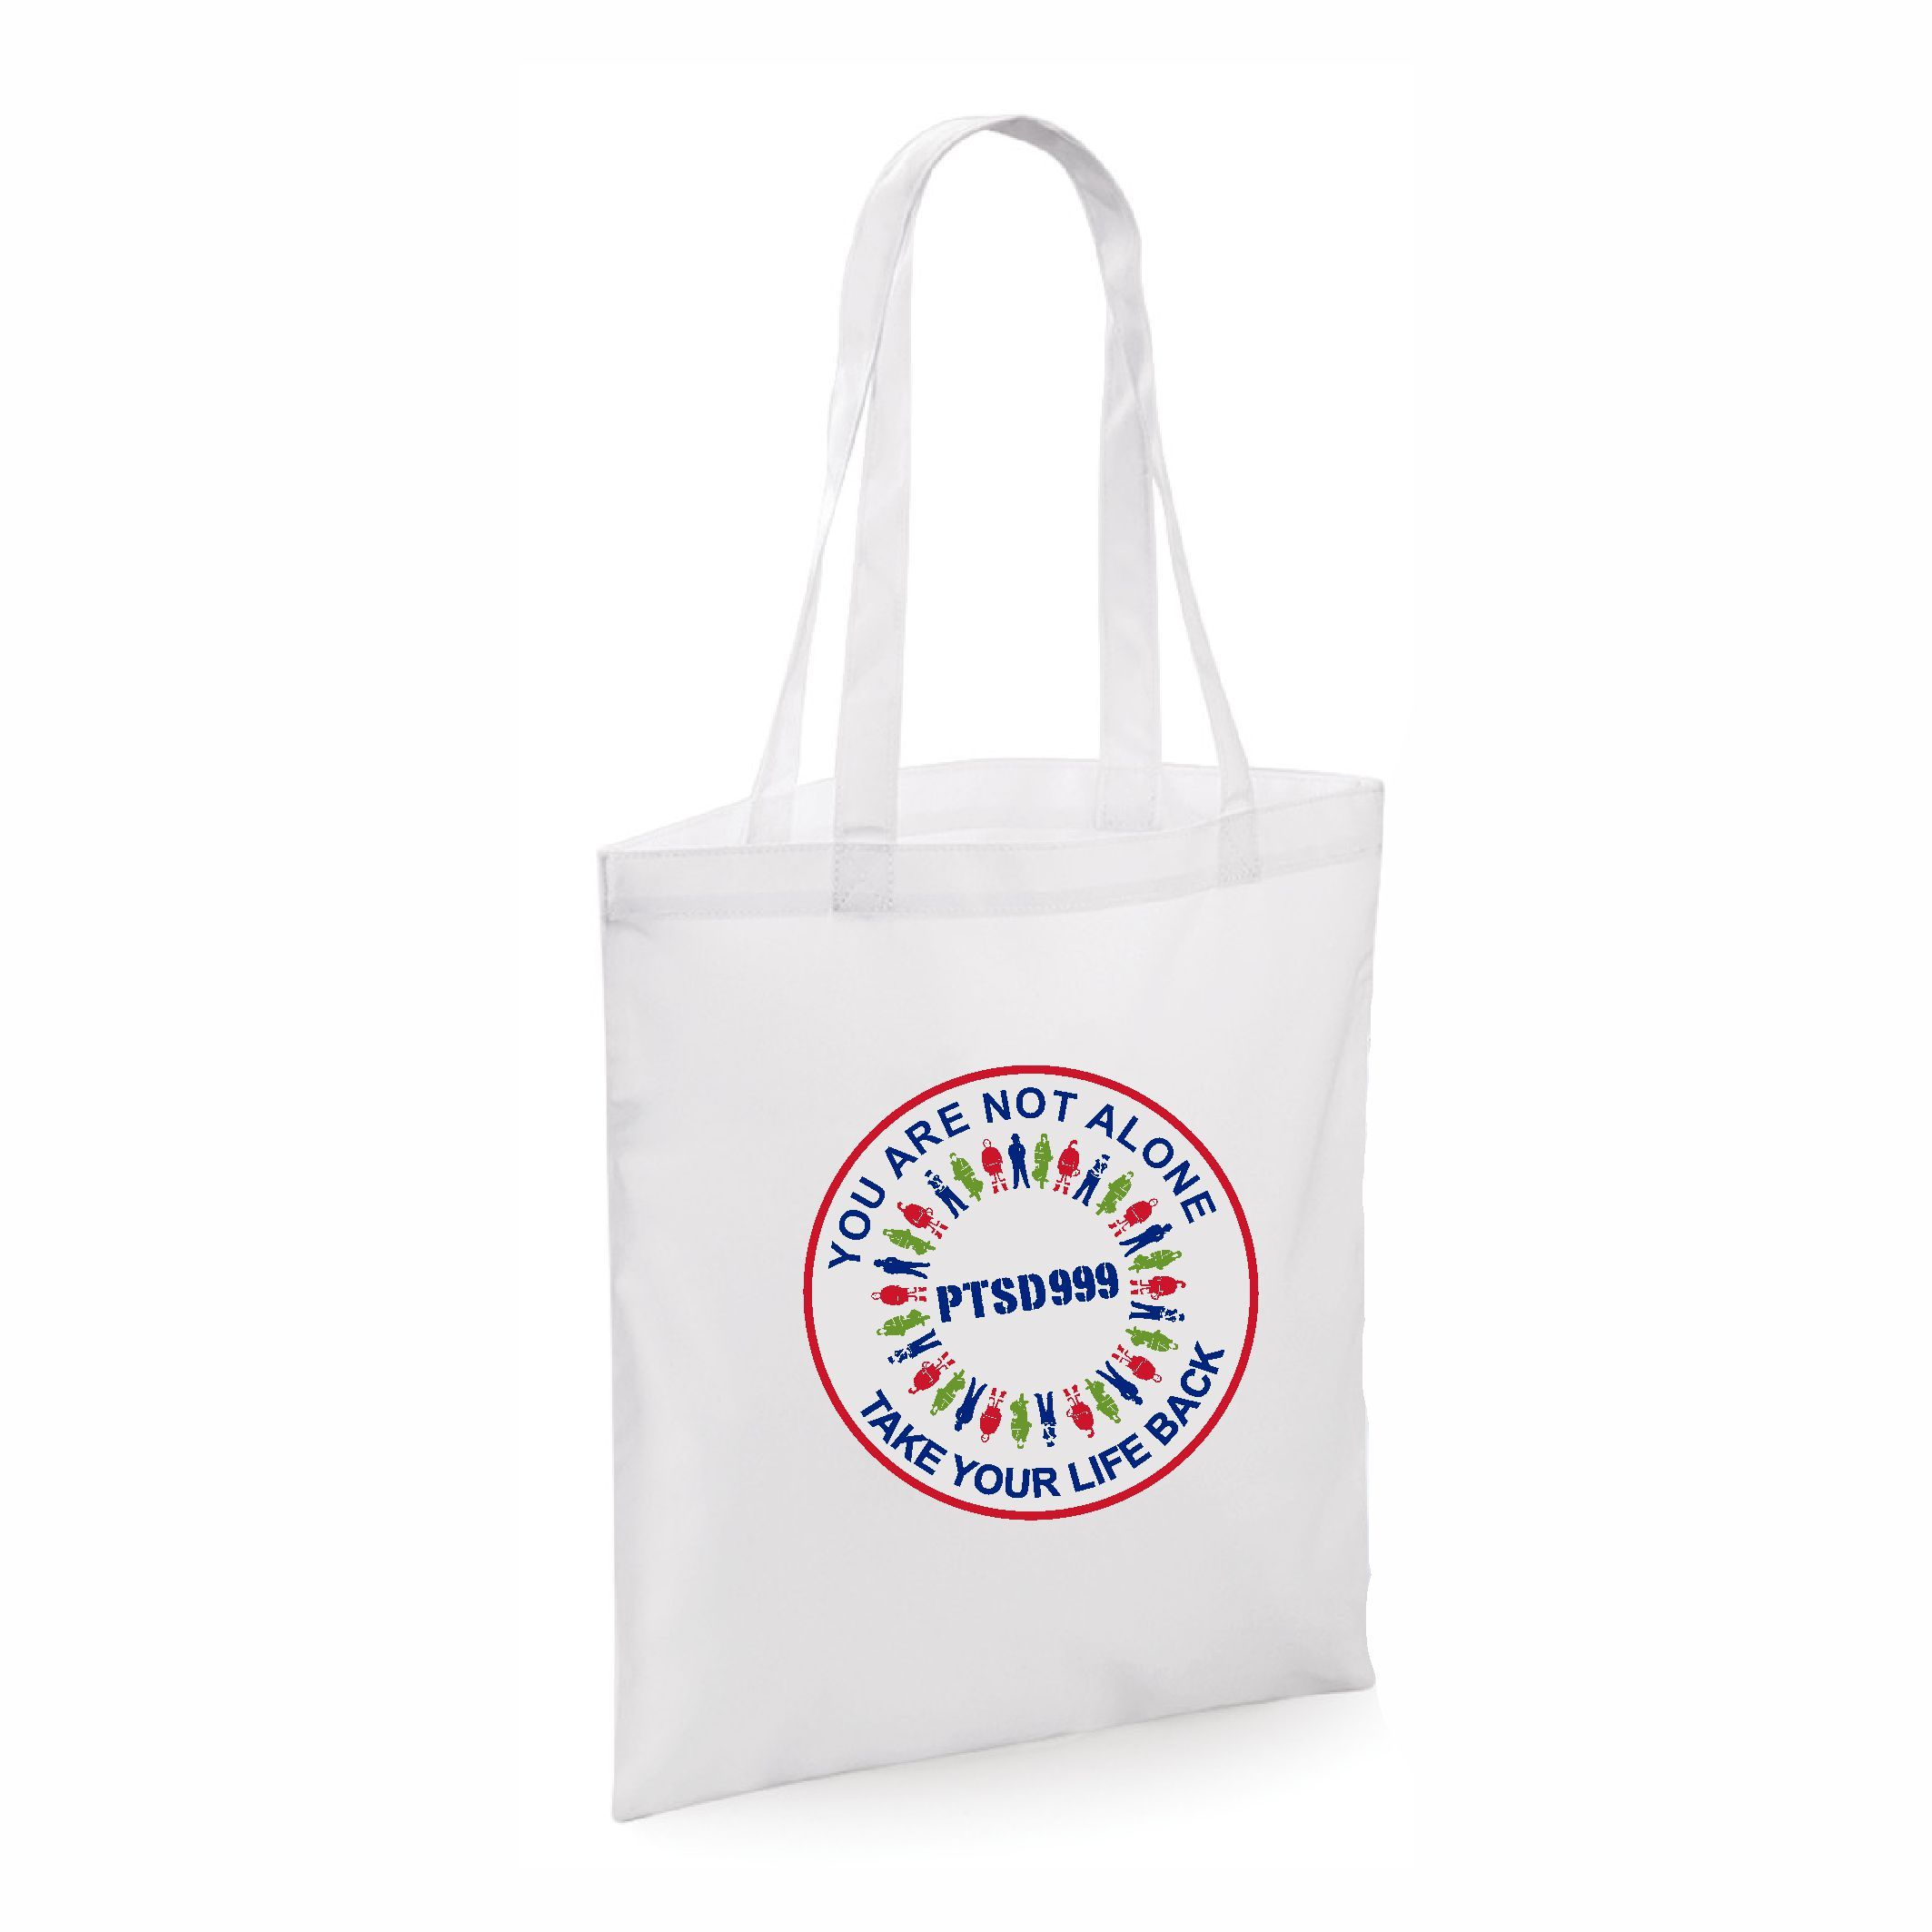 PTSD999- 'You Are Not Alone' Tote Bag